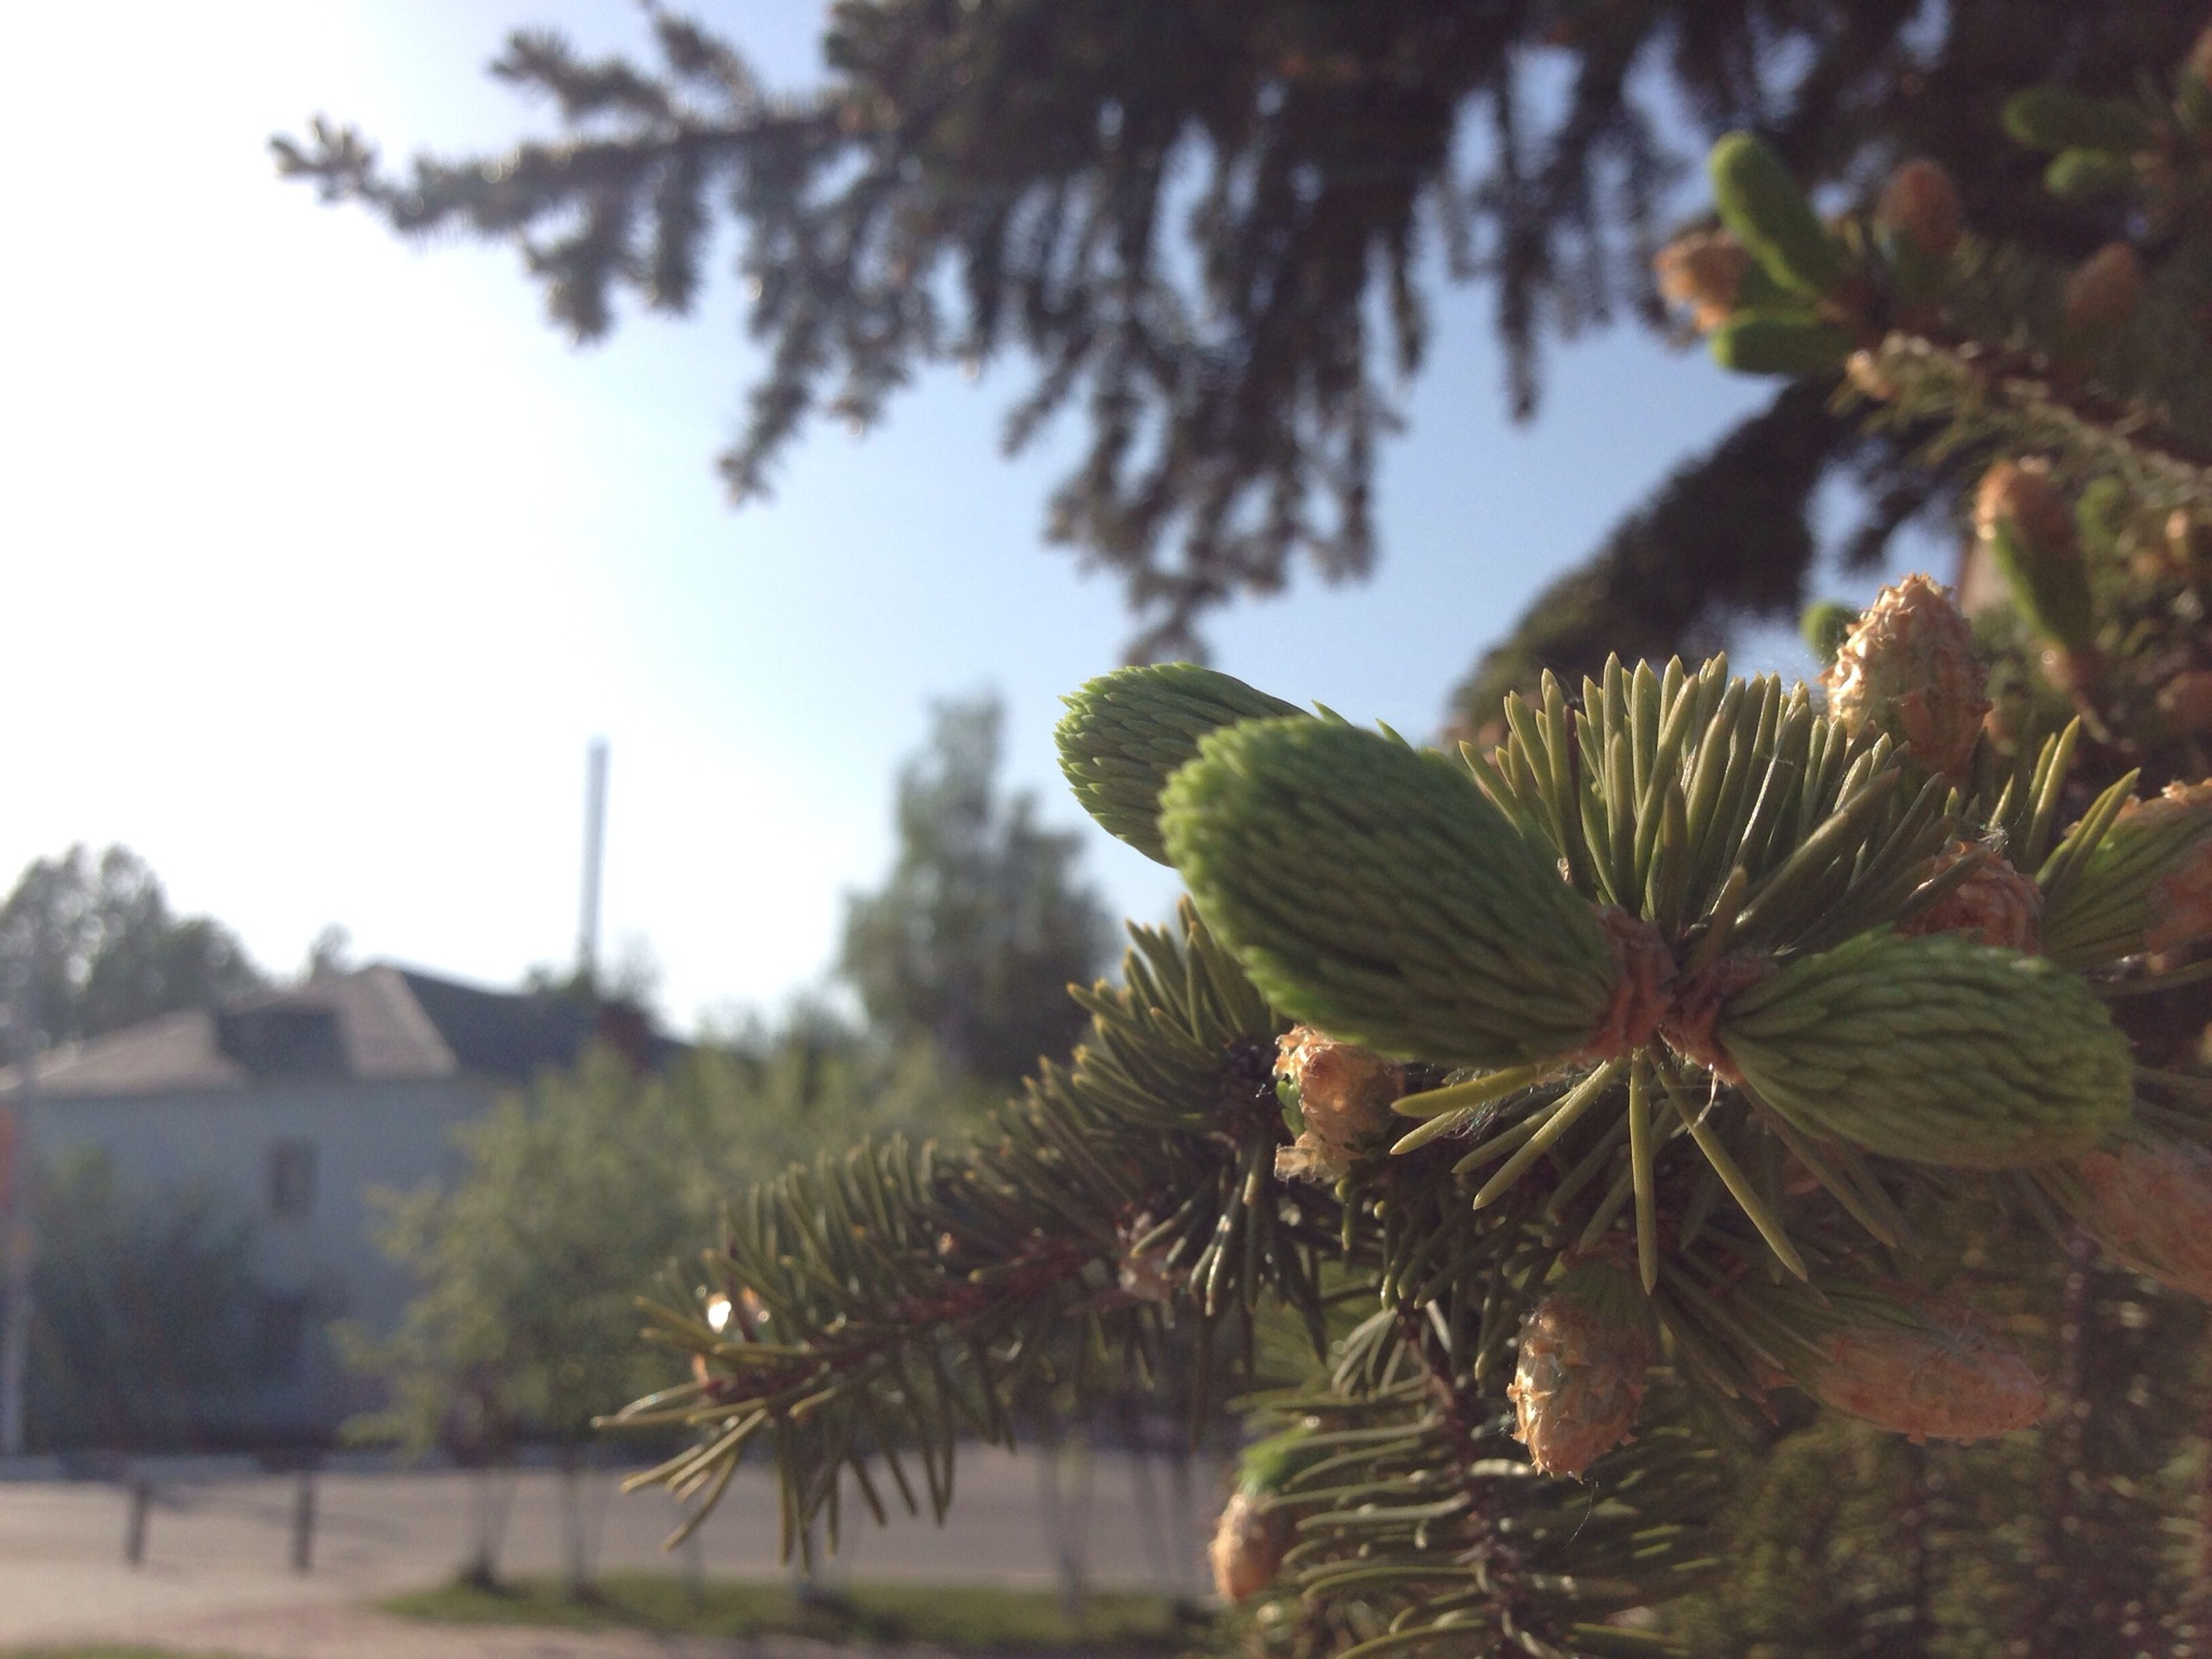 growth, focus on foreground, leaf, plant, nature, flower, tree, close-up, beauty in nature, fragility, freshness, green color, tranquility, branch, sky, day, water, outdoors, stem, growing